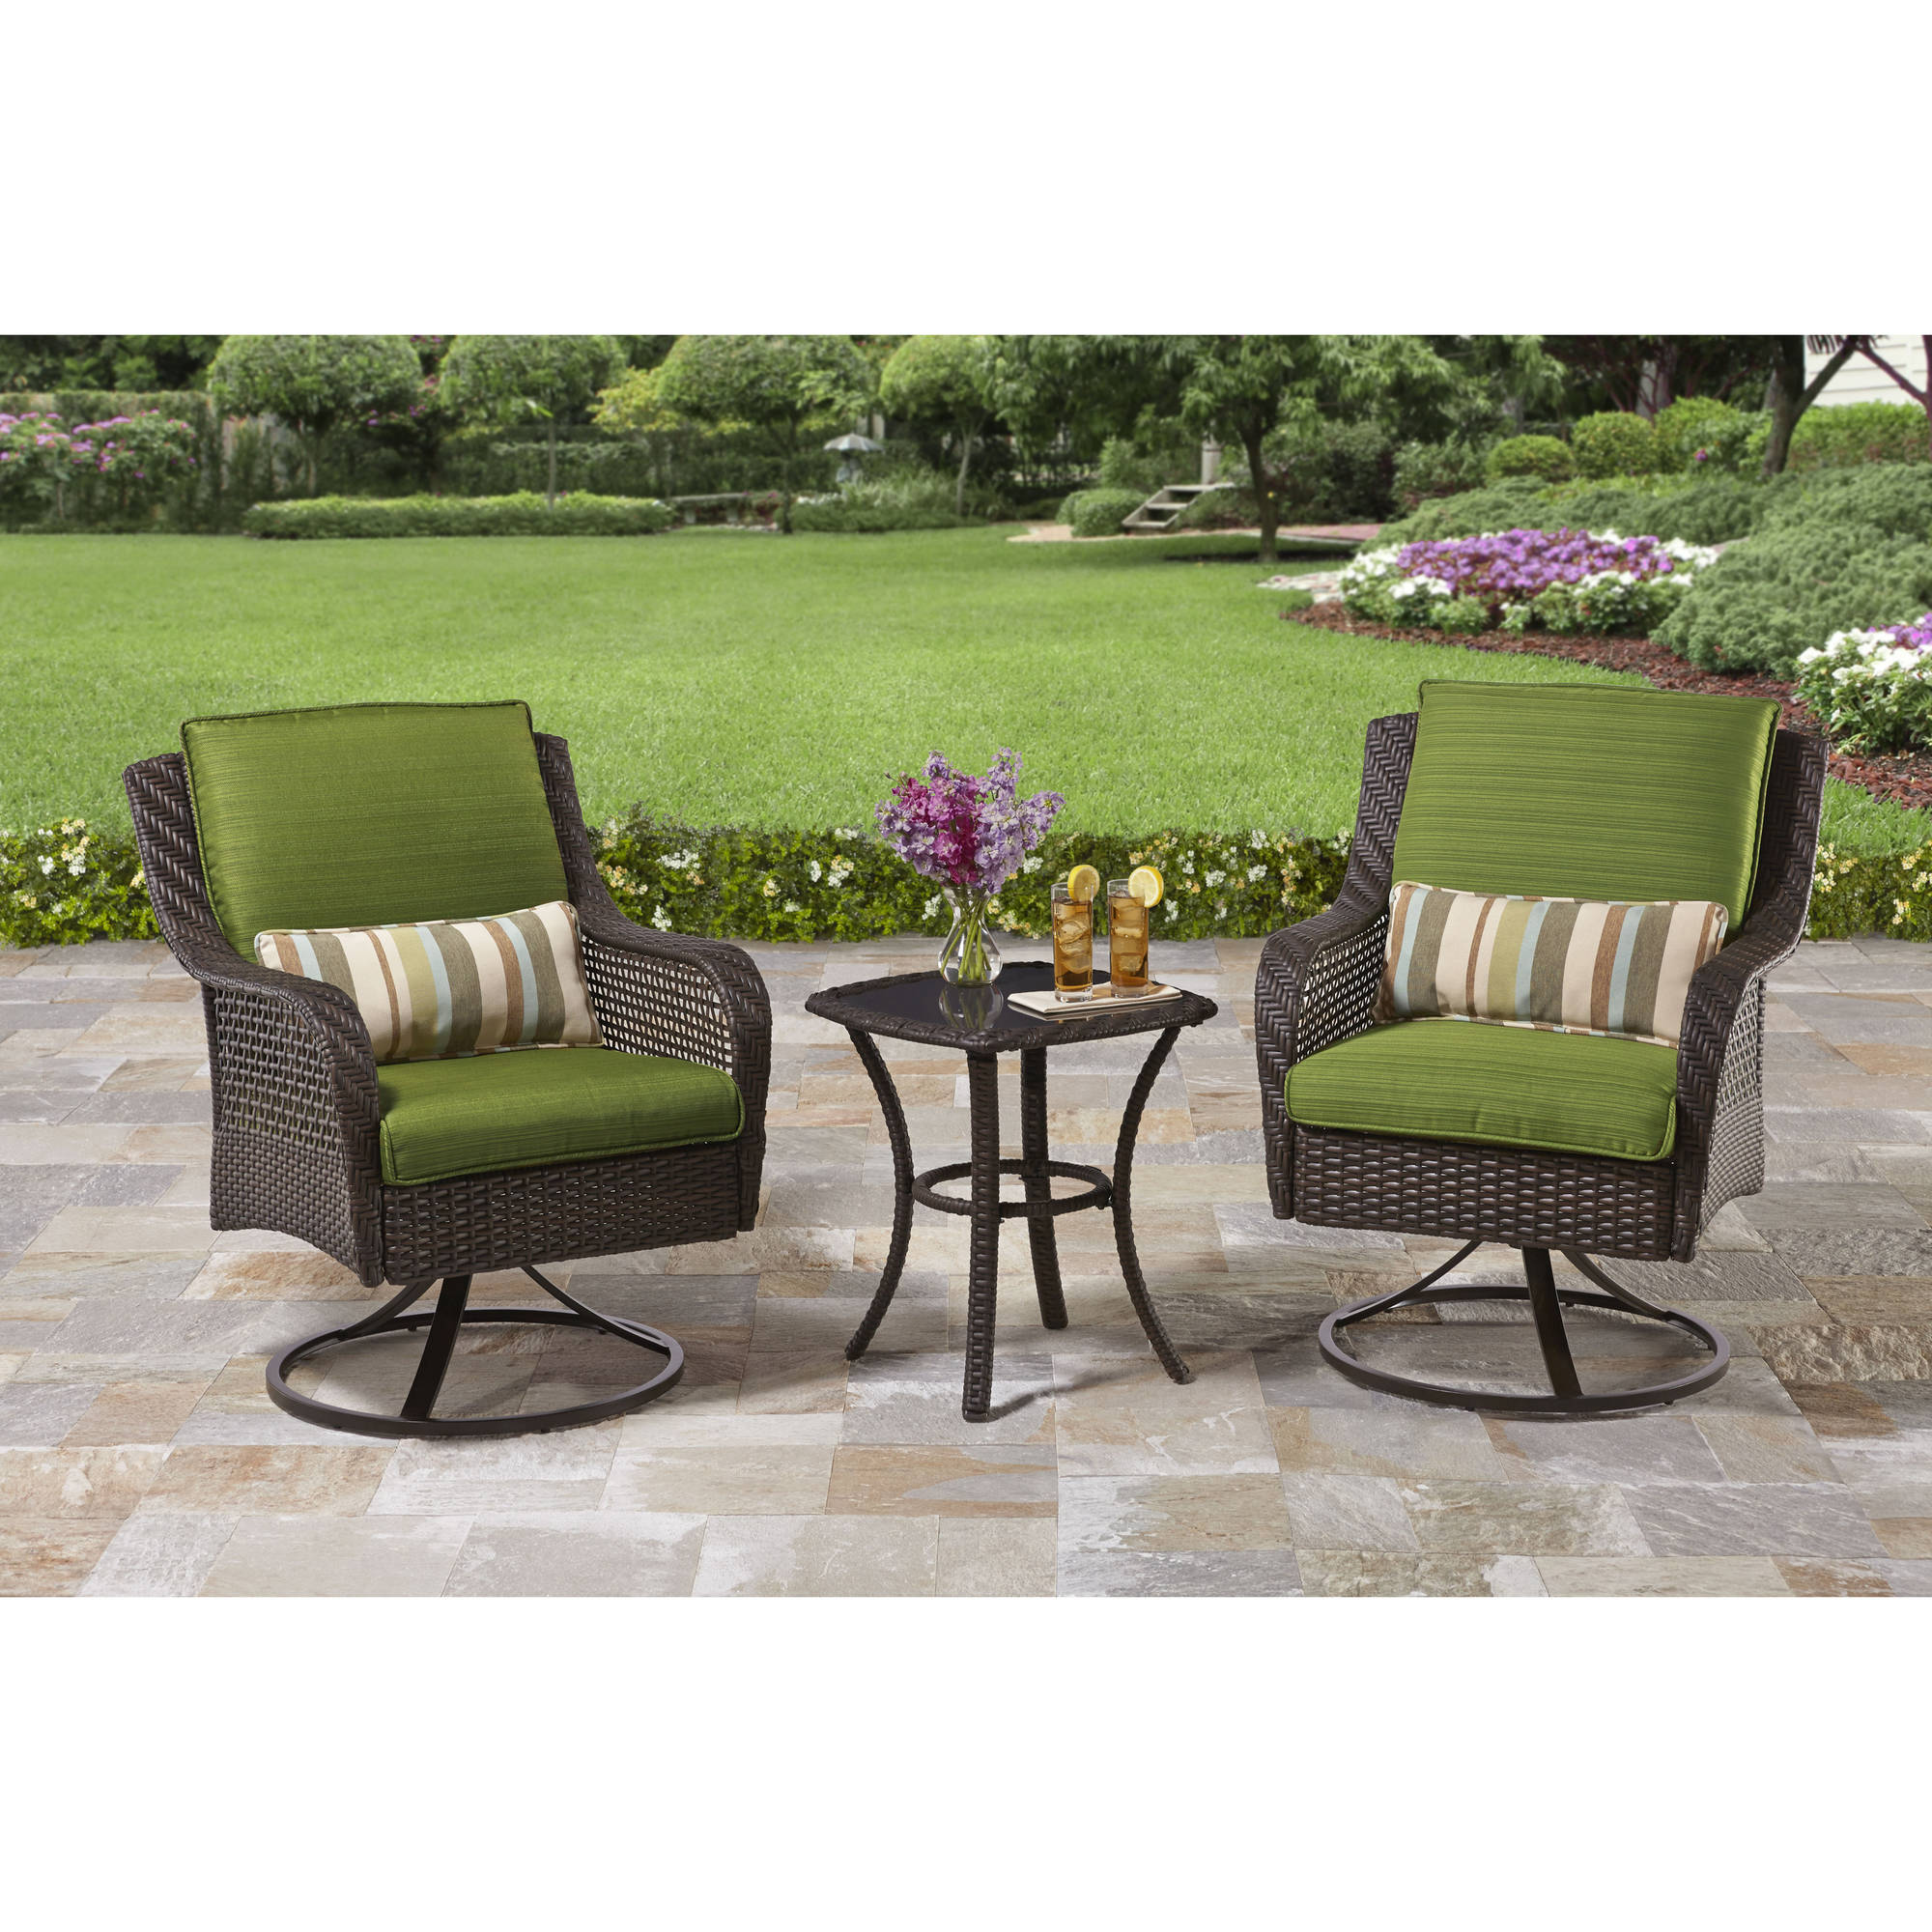 Better Homes and Gardens Amelia Cove 3-Piece Outdoor Bistro Set, Seats 2 by